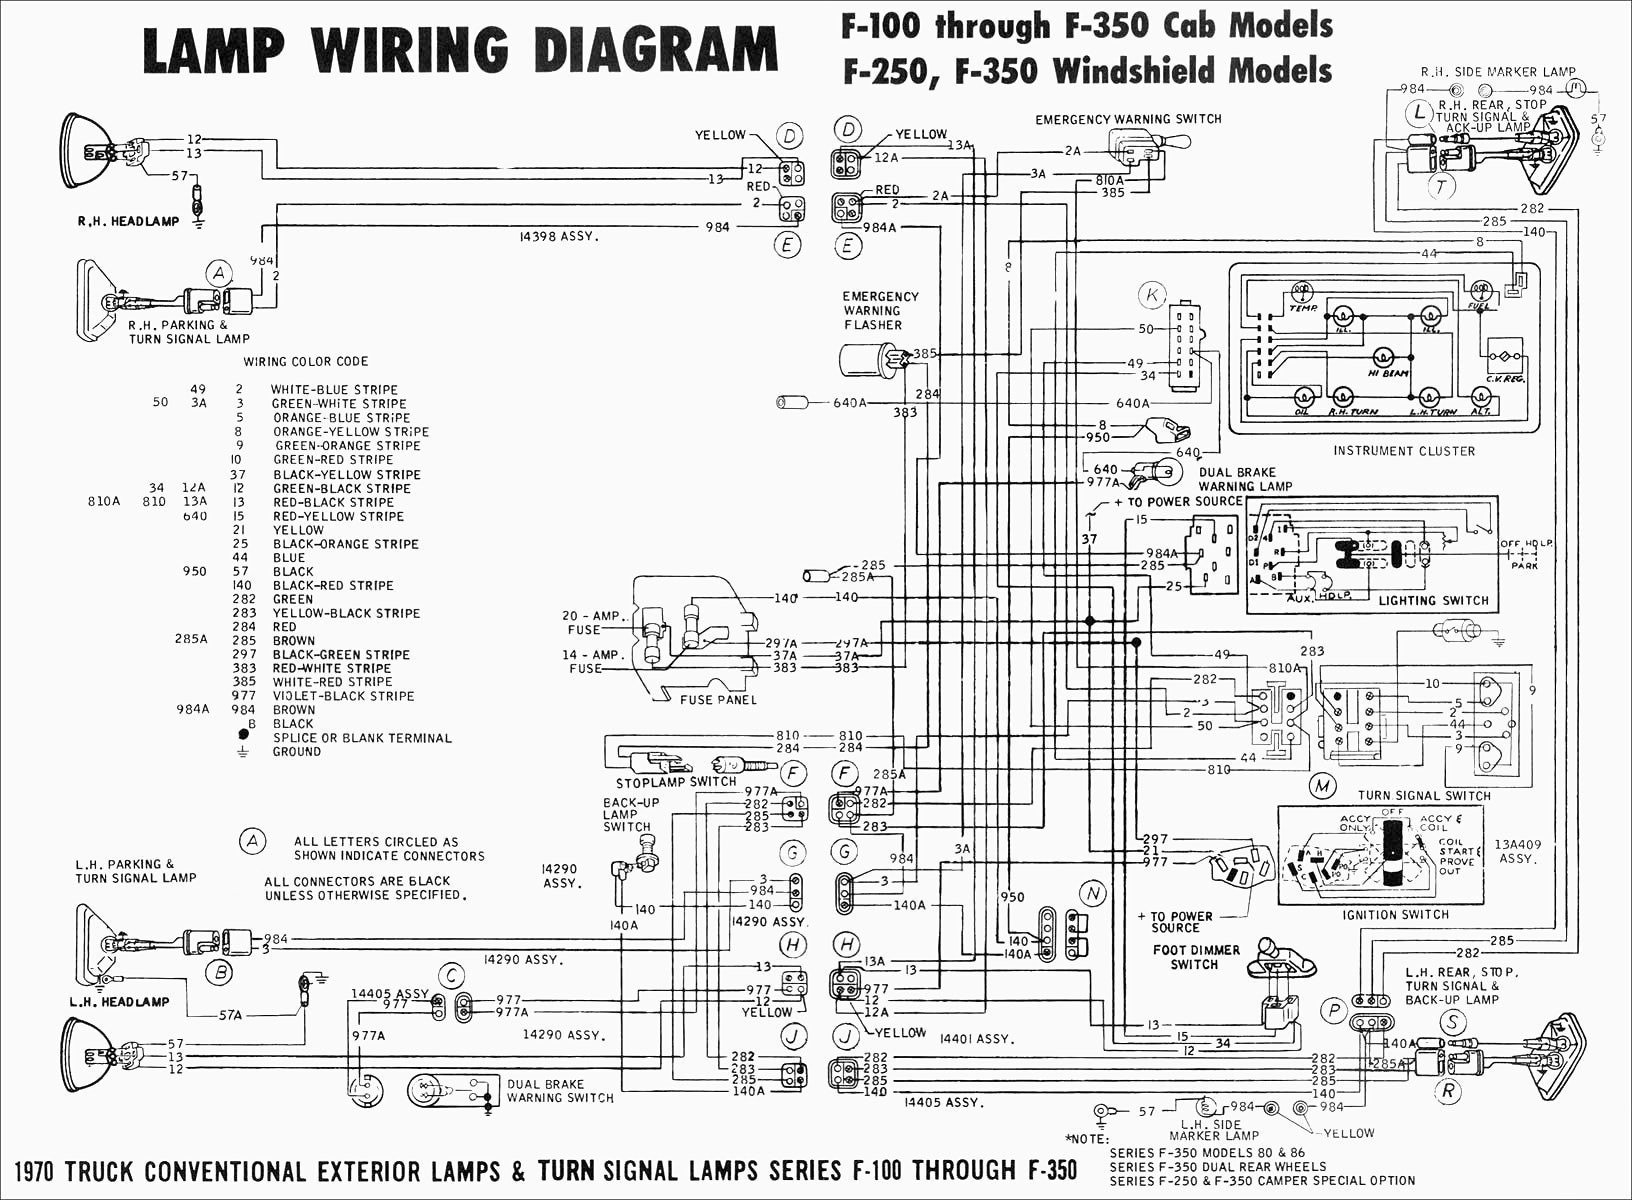 Ohio Home Wiring Circuit Diagram on